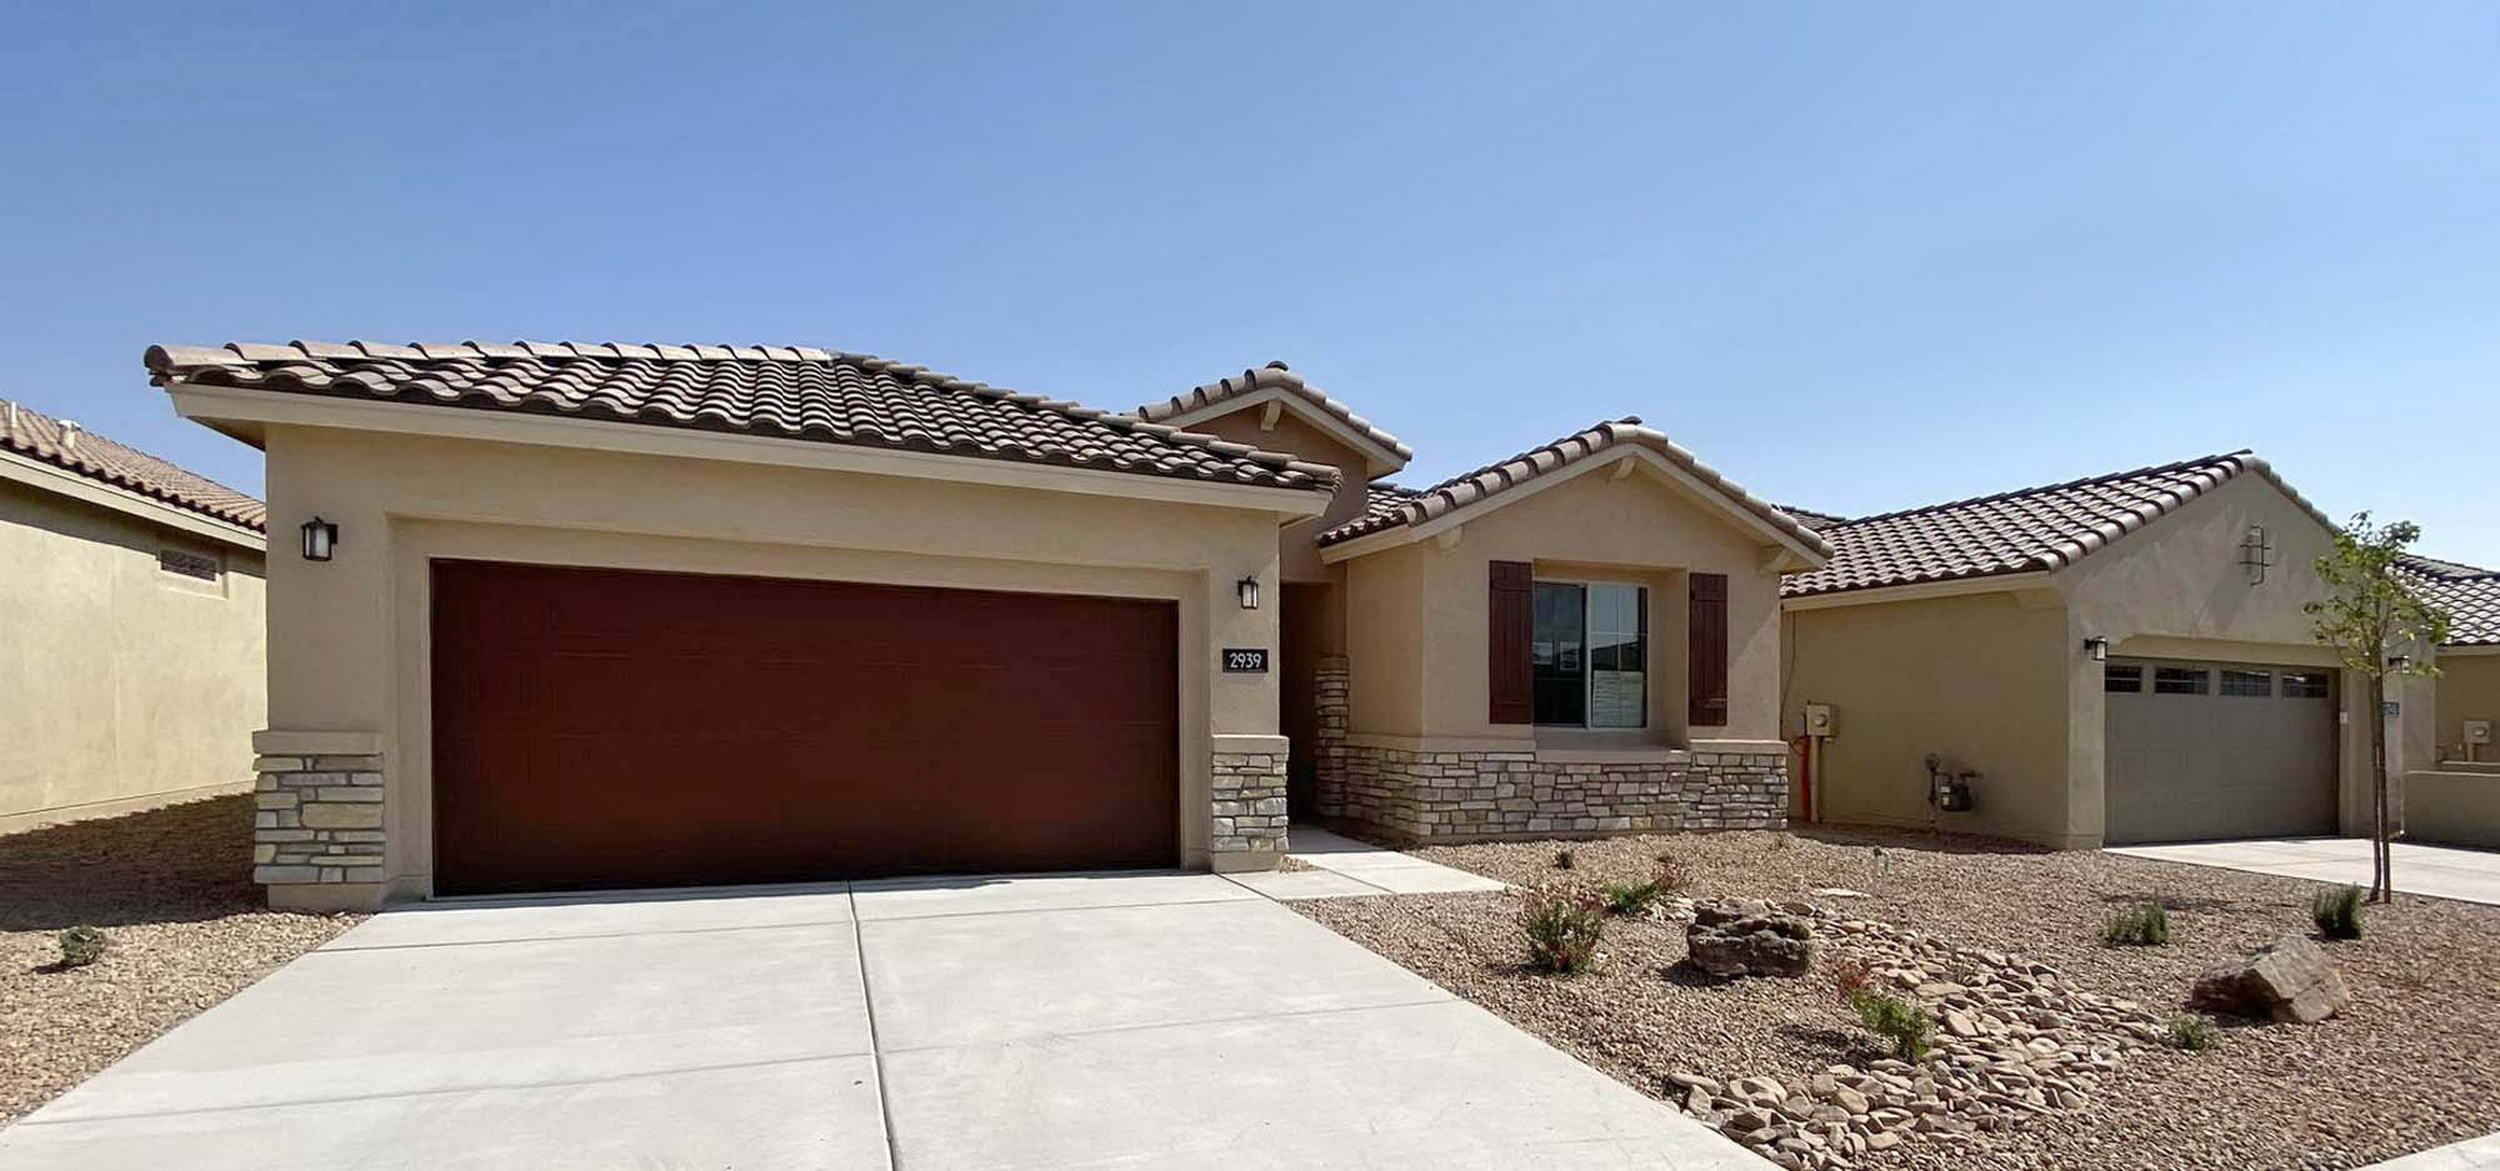 Awesome views with this Darden plan by Pulte in a gated community! Beautiful kitchen with luxurious granite kitchen counters, high-grade cabinets, tile backsplash. Very open plan. 20'' diamondi-lay tile in most living spaces. Owner's Suite, Gathering Room and Covered Patio are extended for added room. Owner's Bath has a separate tub and shower. Green-Build Silver for efficiency/comfort. 4' garage ext. No homes behind. Amenity Center right next door has 2 pools, gym, yoga and a huge park!